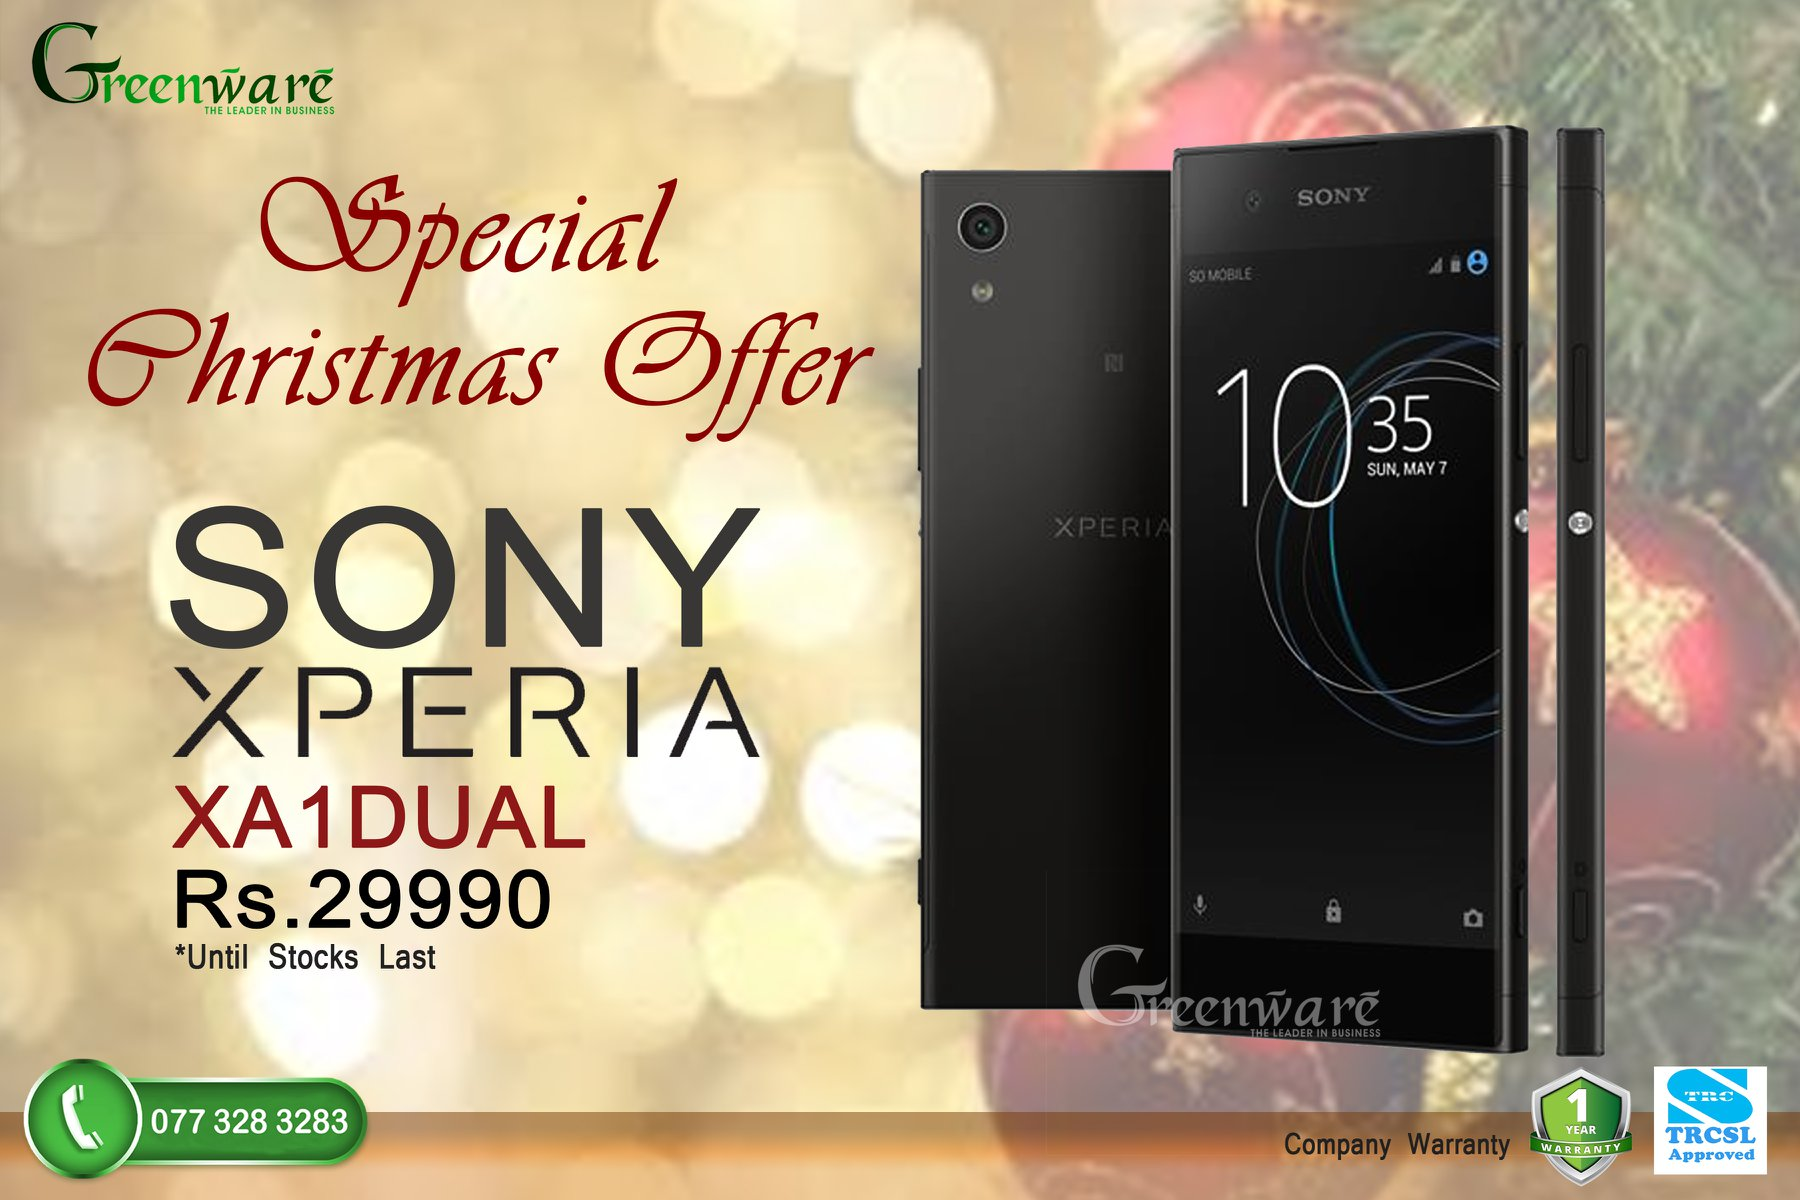 Greenware Mobile More Christmas Offers !! Come shop until you drop with these exciting offers to come!  Sony Xperia XA1 Dual for just Rs.29990 with 1 year of company warranty too!   Offer valid till stocks last, so hurry!  G R E E N W A R E - The Leader in Business Phone :